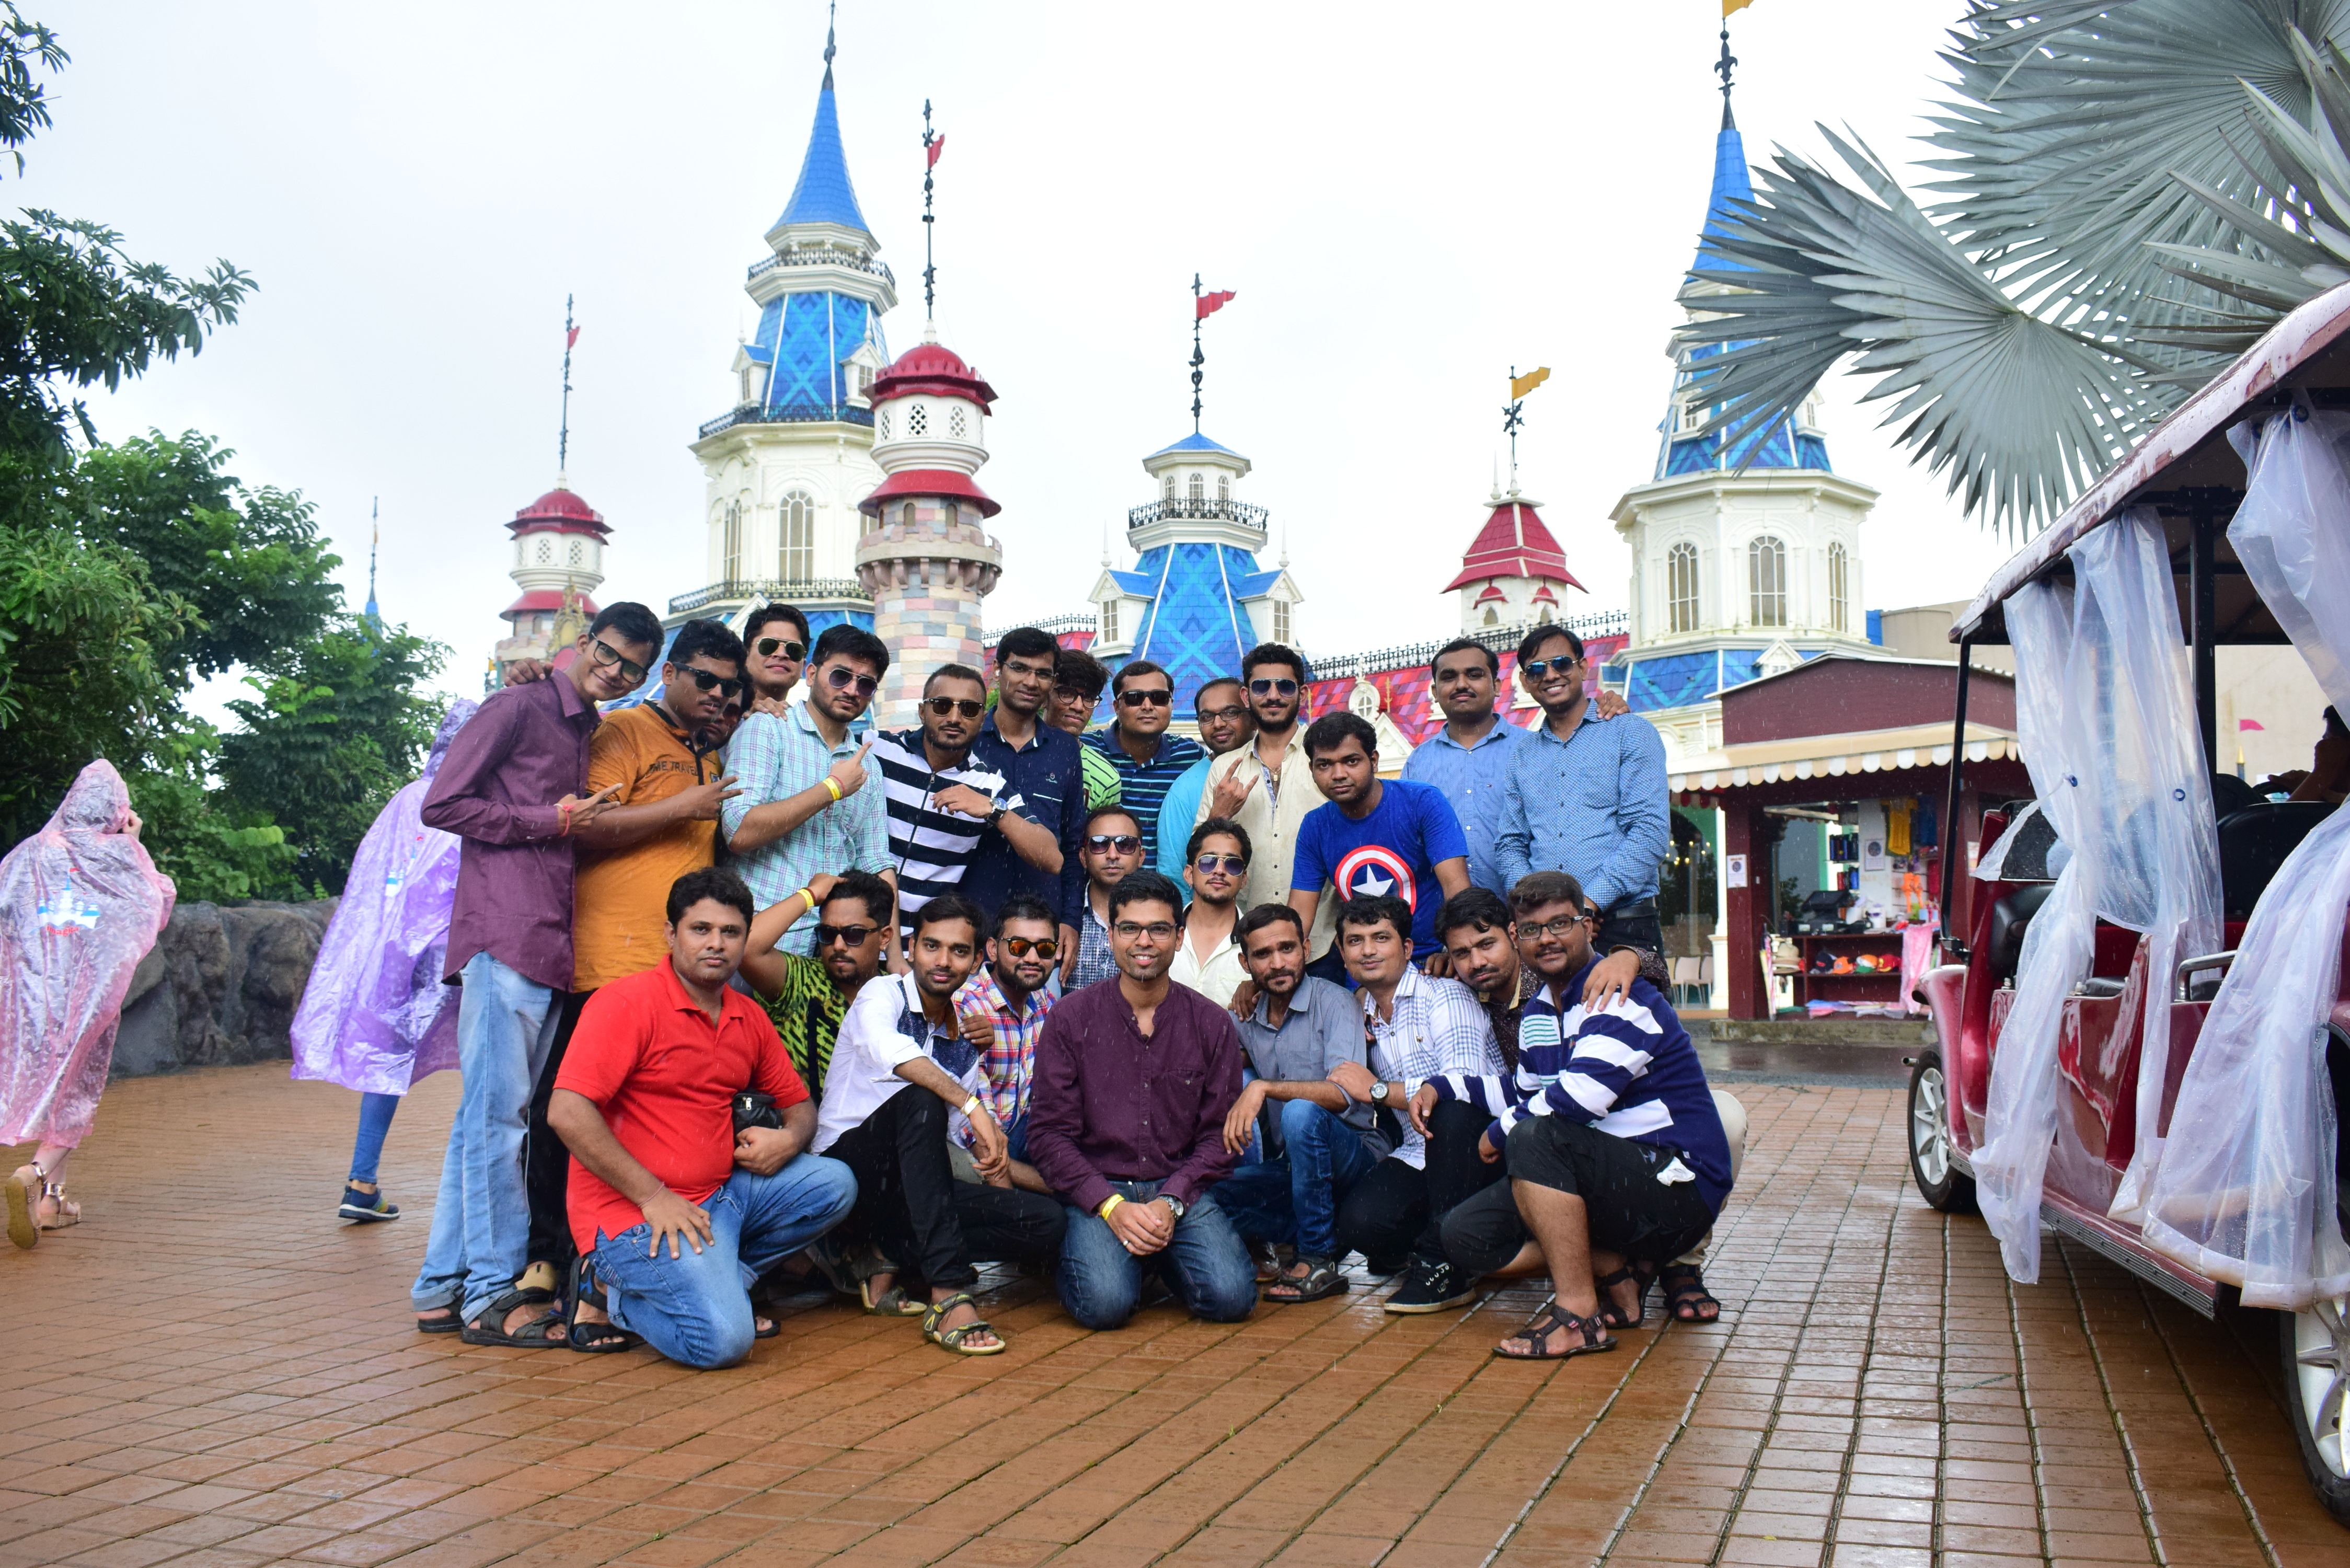 Enjoying at Imagica